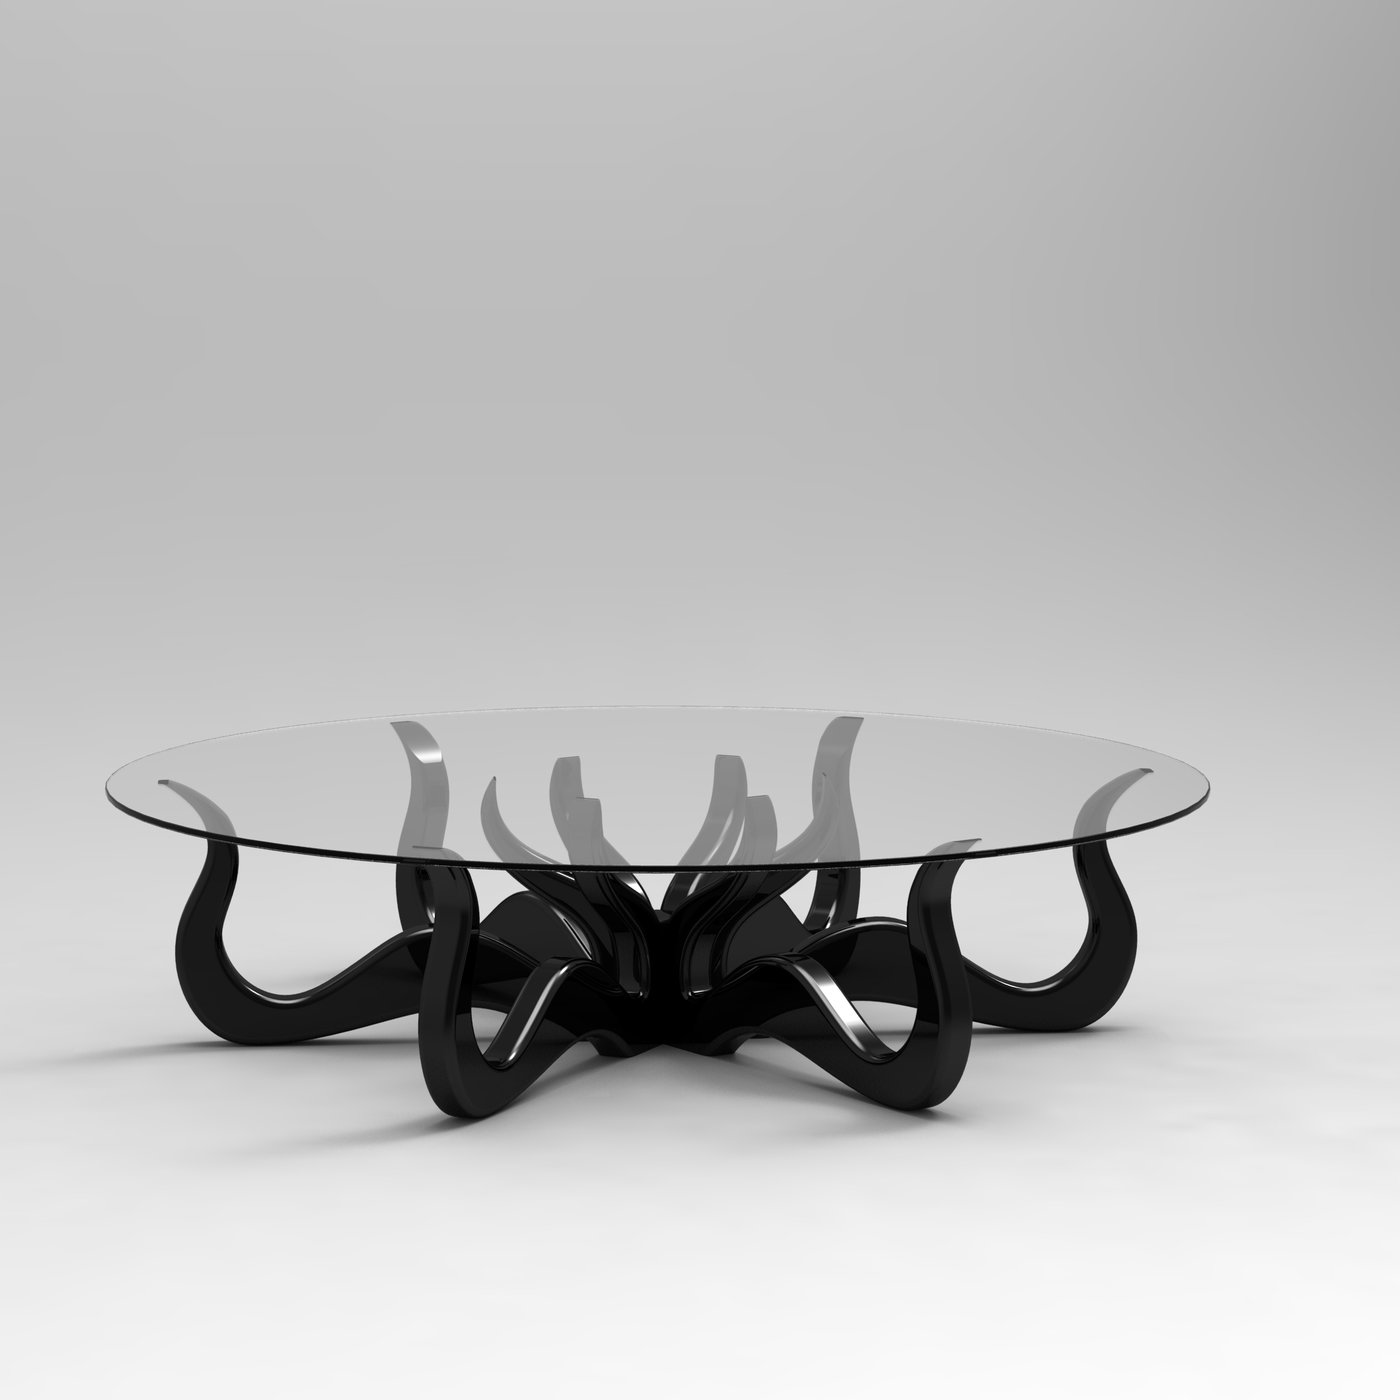 octopus table by jesse shaw at coroflot com